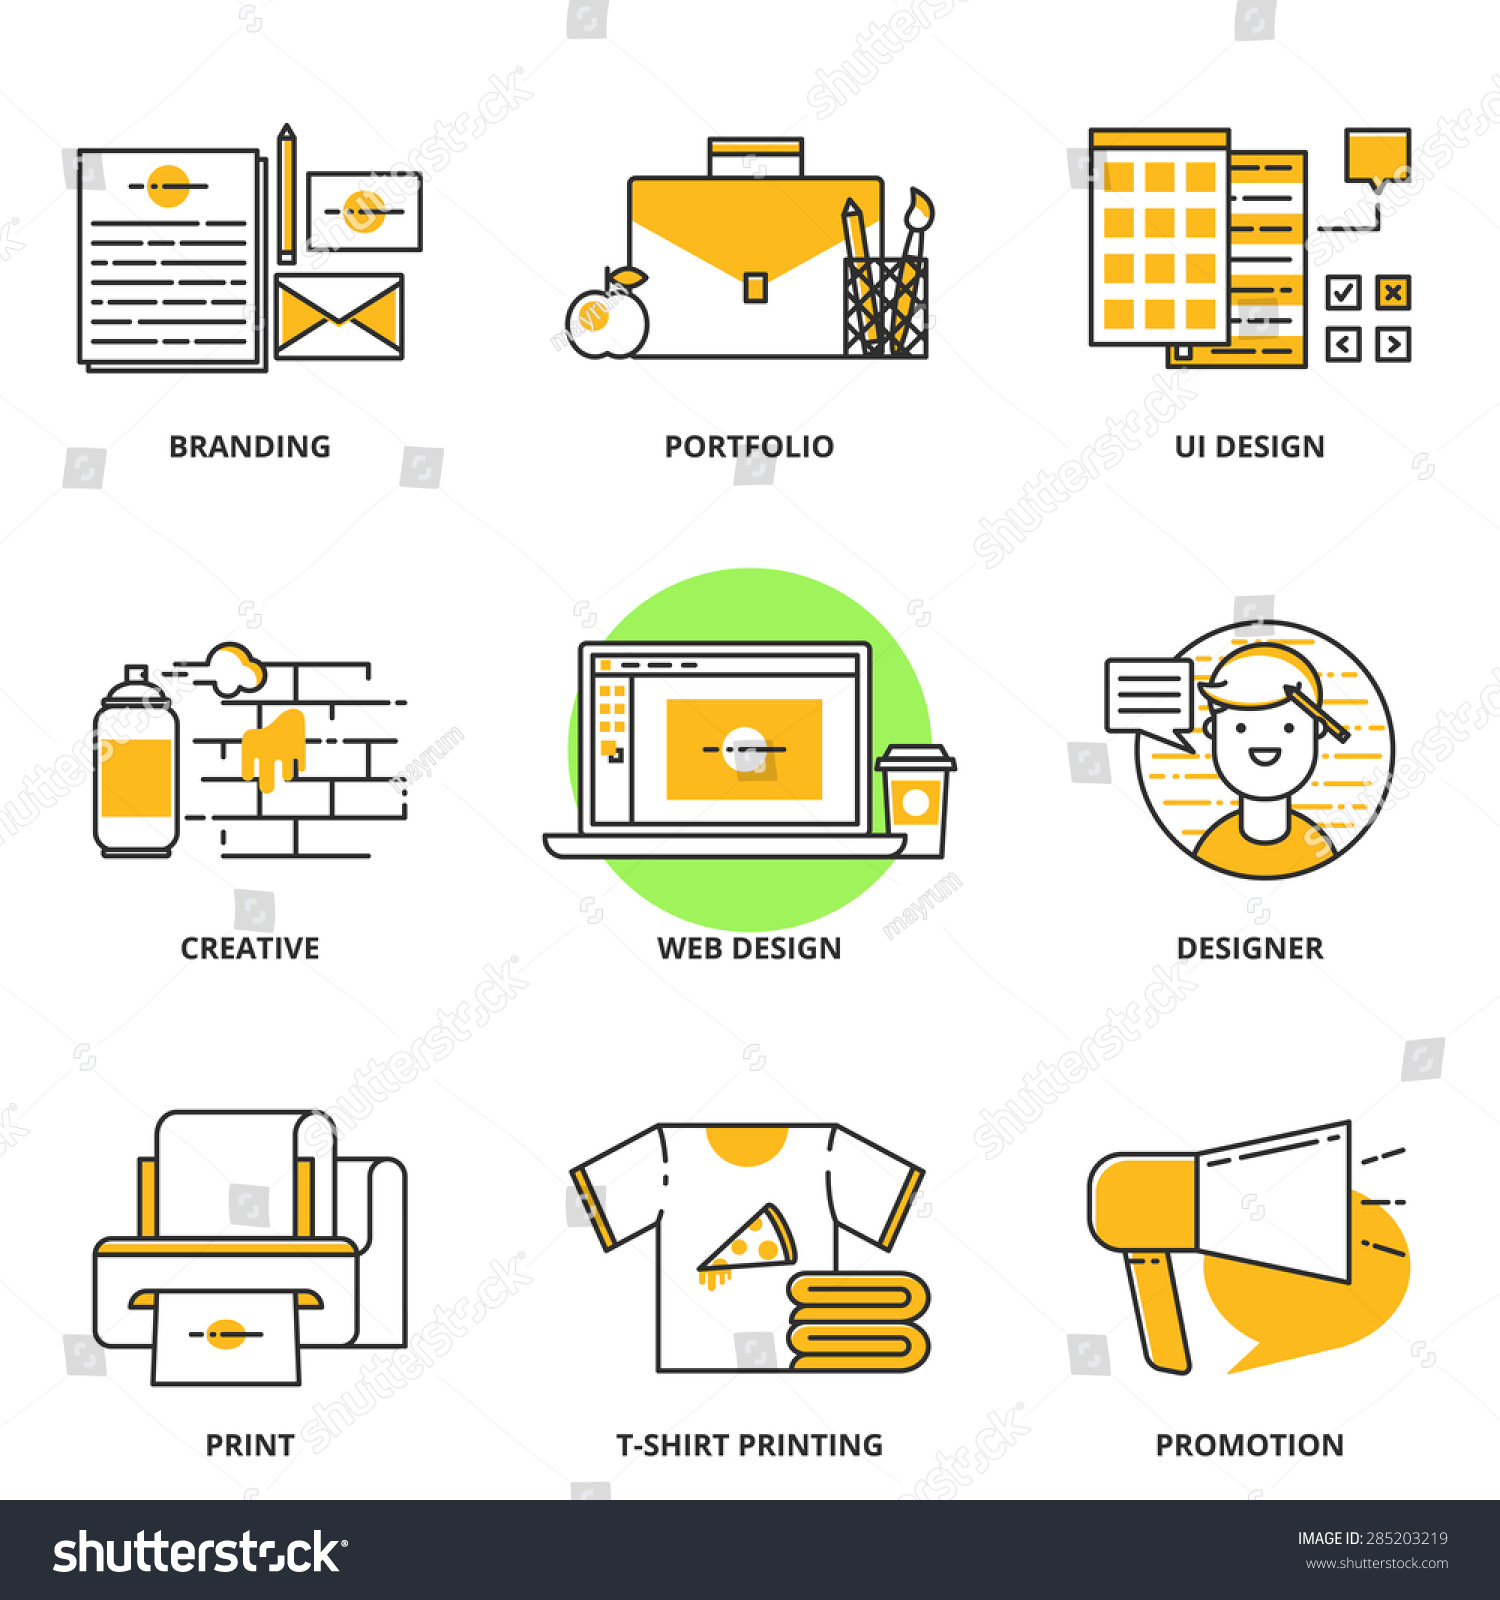 Branding corporate identity design vector icons stock for T shirt printing website